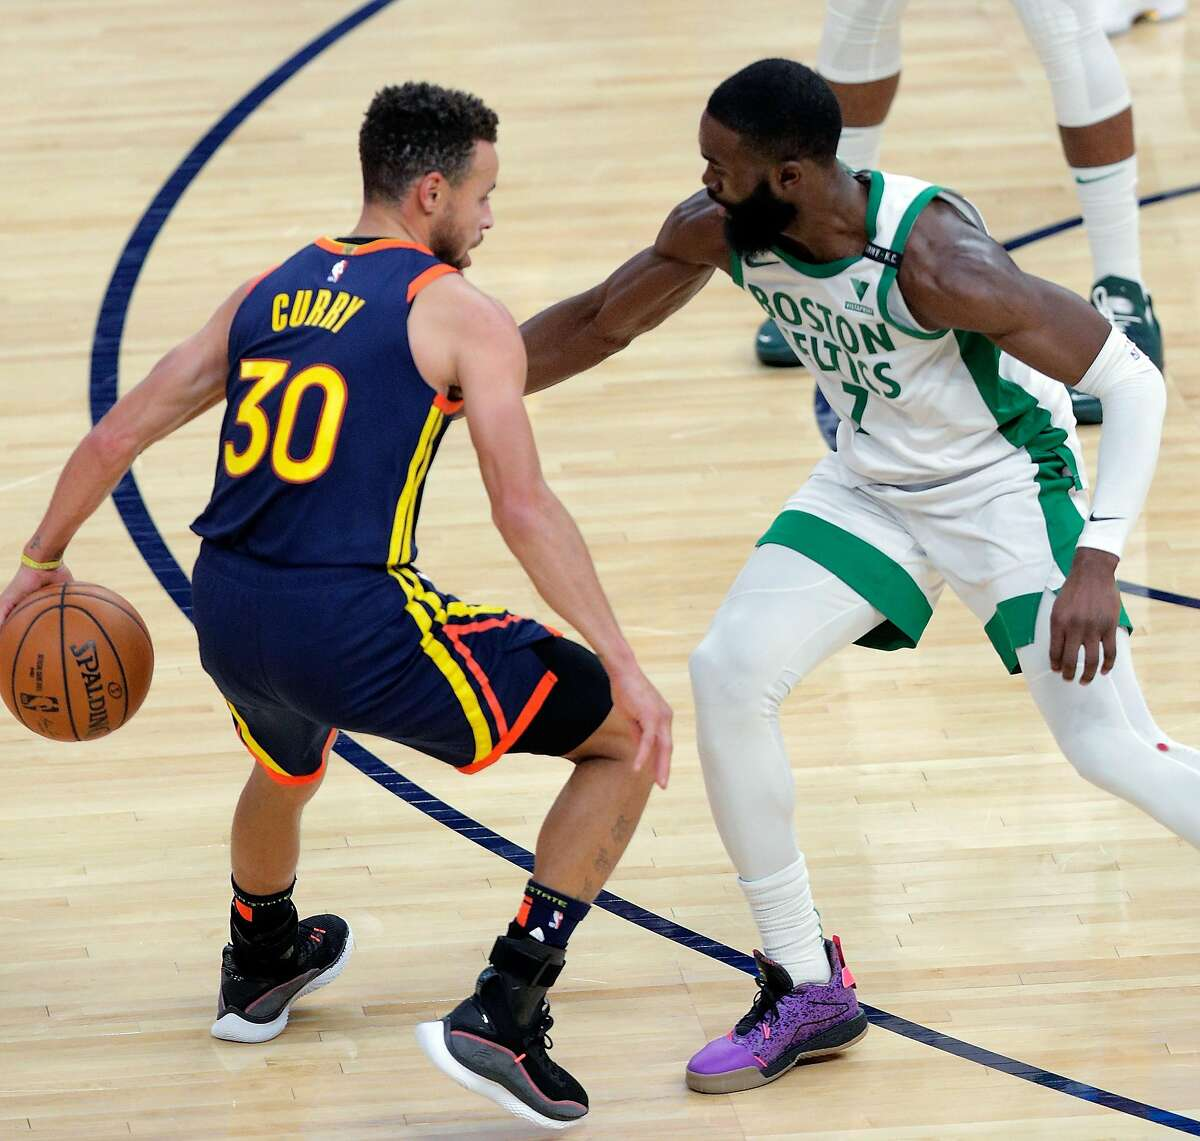 Stephen Curry (30) dribbles behind his back as he drives to the basket against Jaylen Brown (7) in the first half as the Golden State Warriors played the Boston Celtics at Chase Center in San Francisco, Calif., on Tuesday, February 2, 2021.